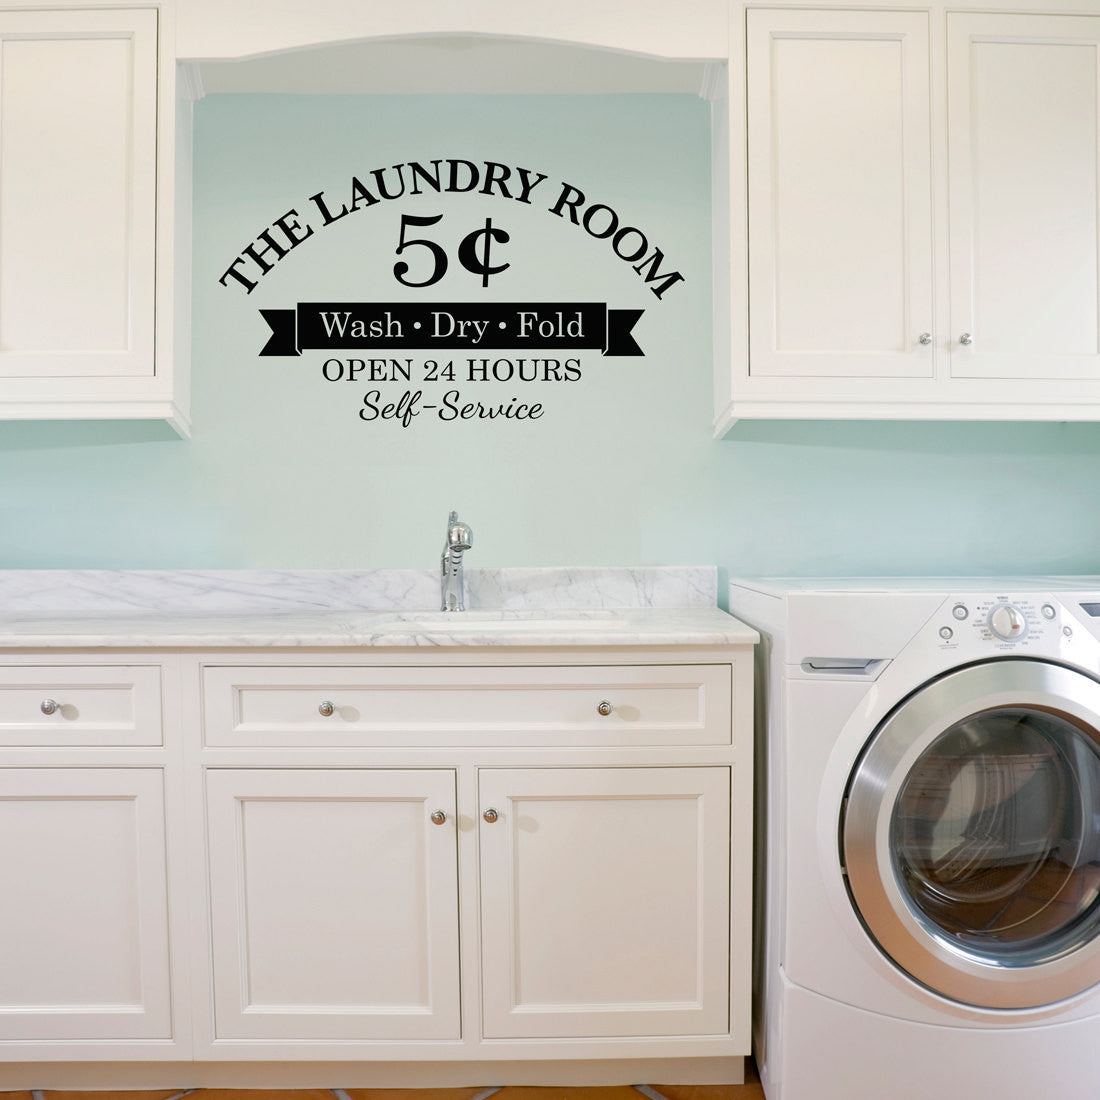 Laundry room decals stephen edward graphics laundry room wall decal wash dry fold 5 cents open 24 hours self service large amipublicfo Images